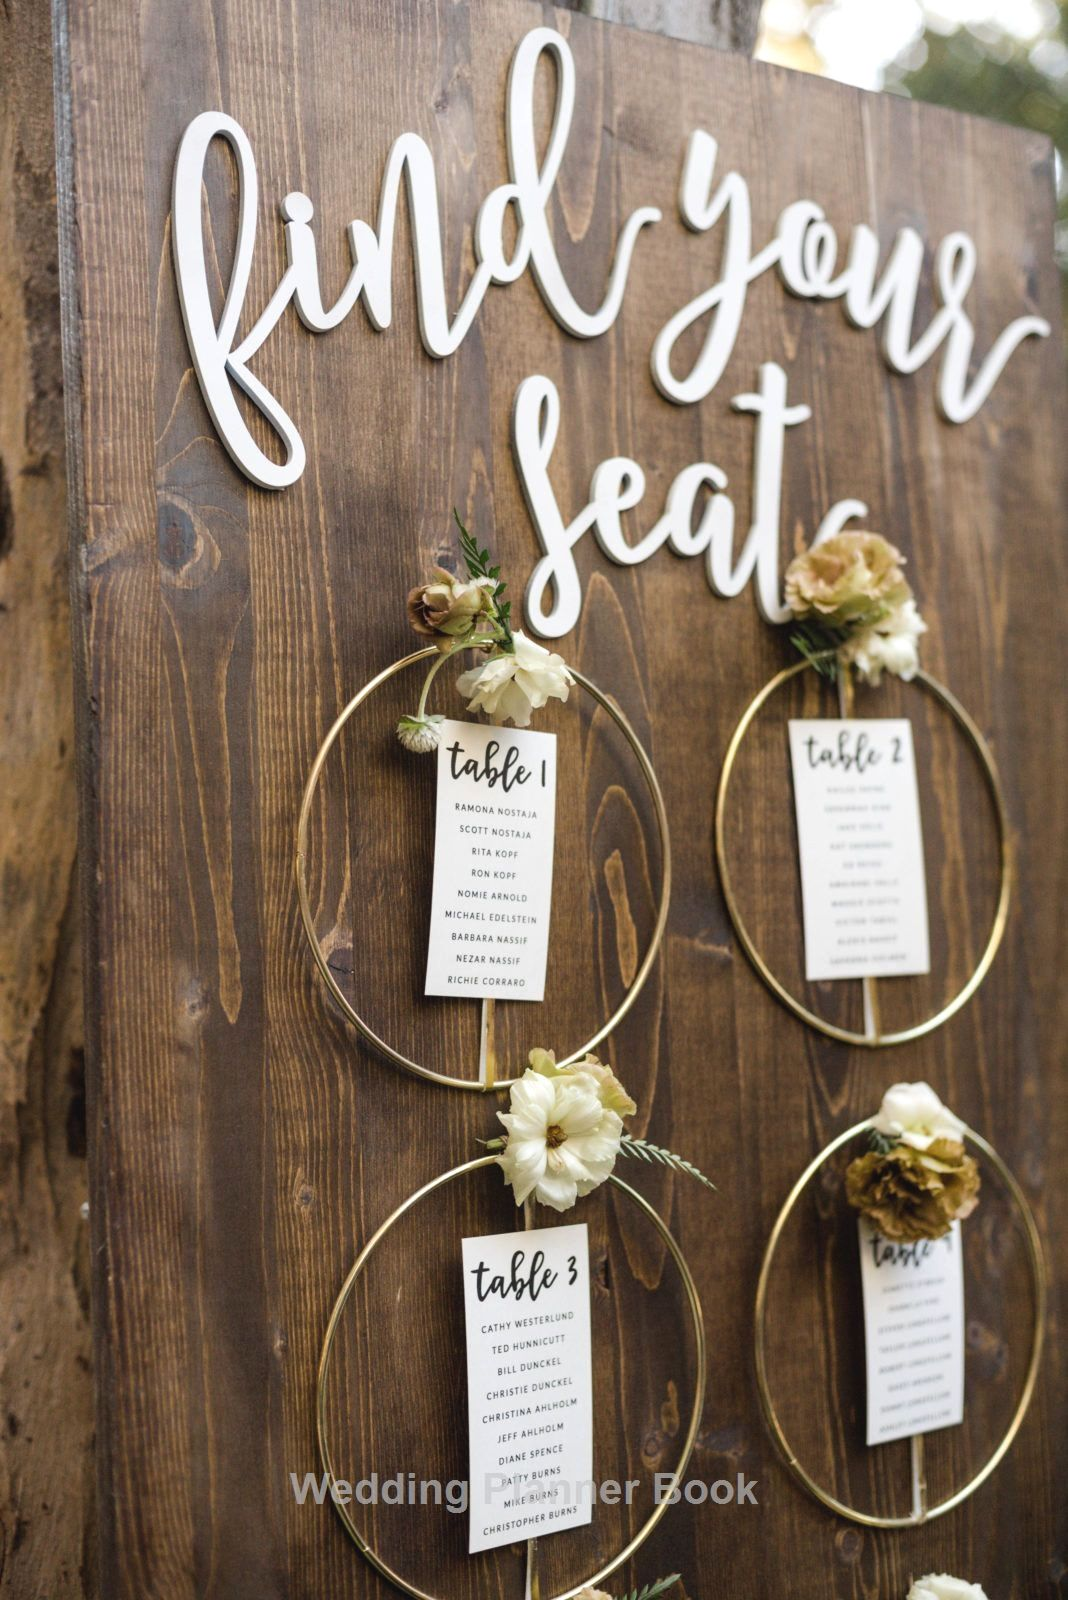 Wedding Planner Everything You Need To Plan Amp Organize A